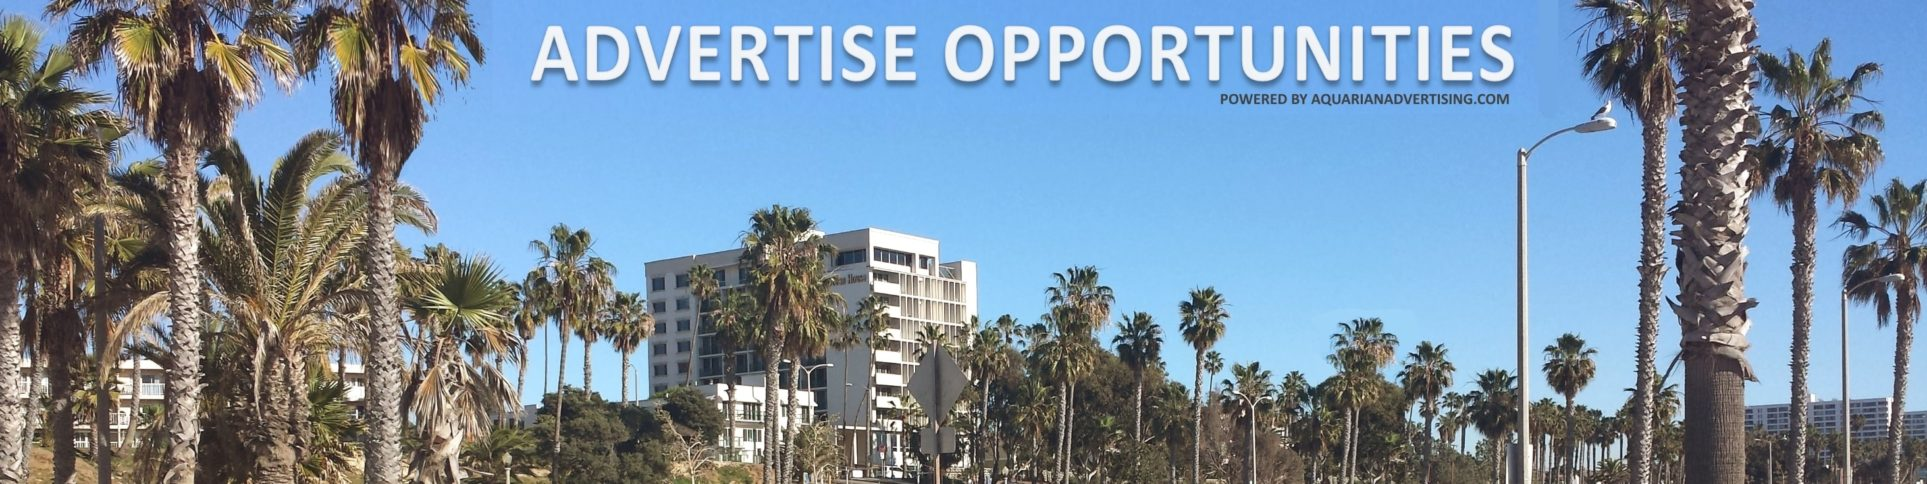 Advertise Opportunities Network